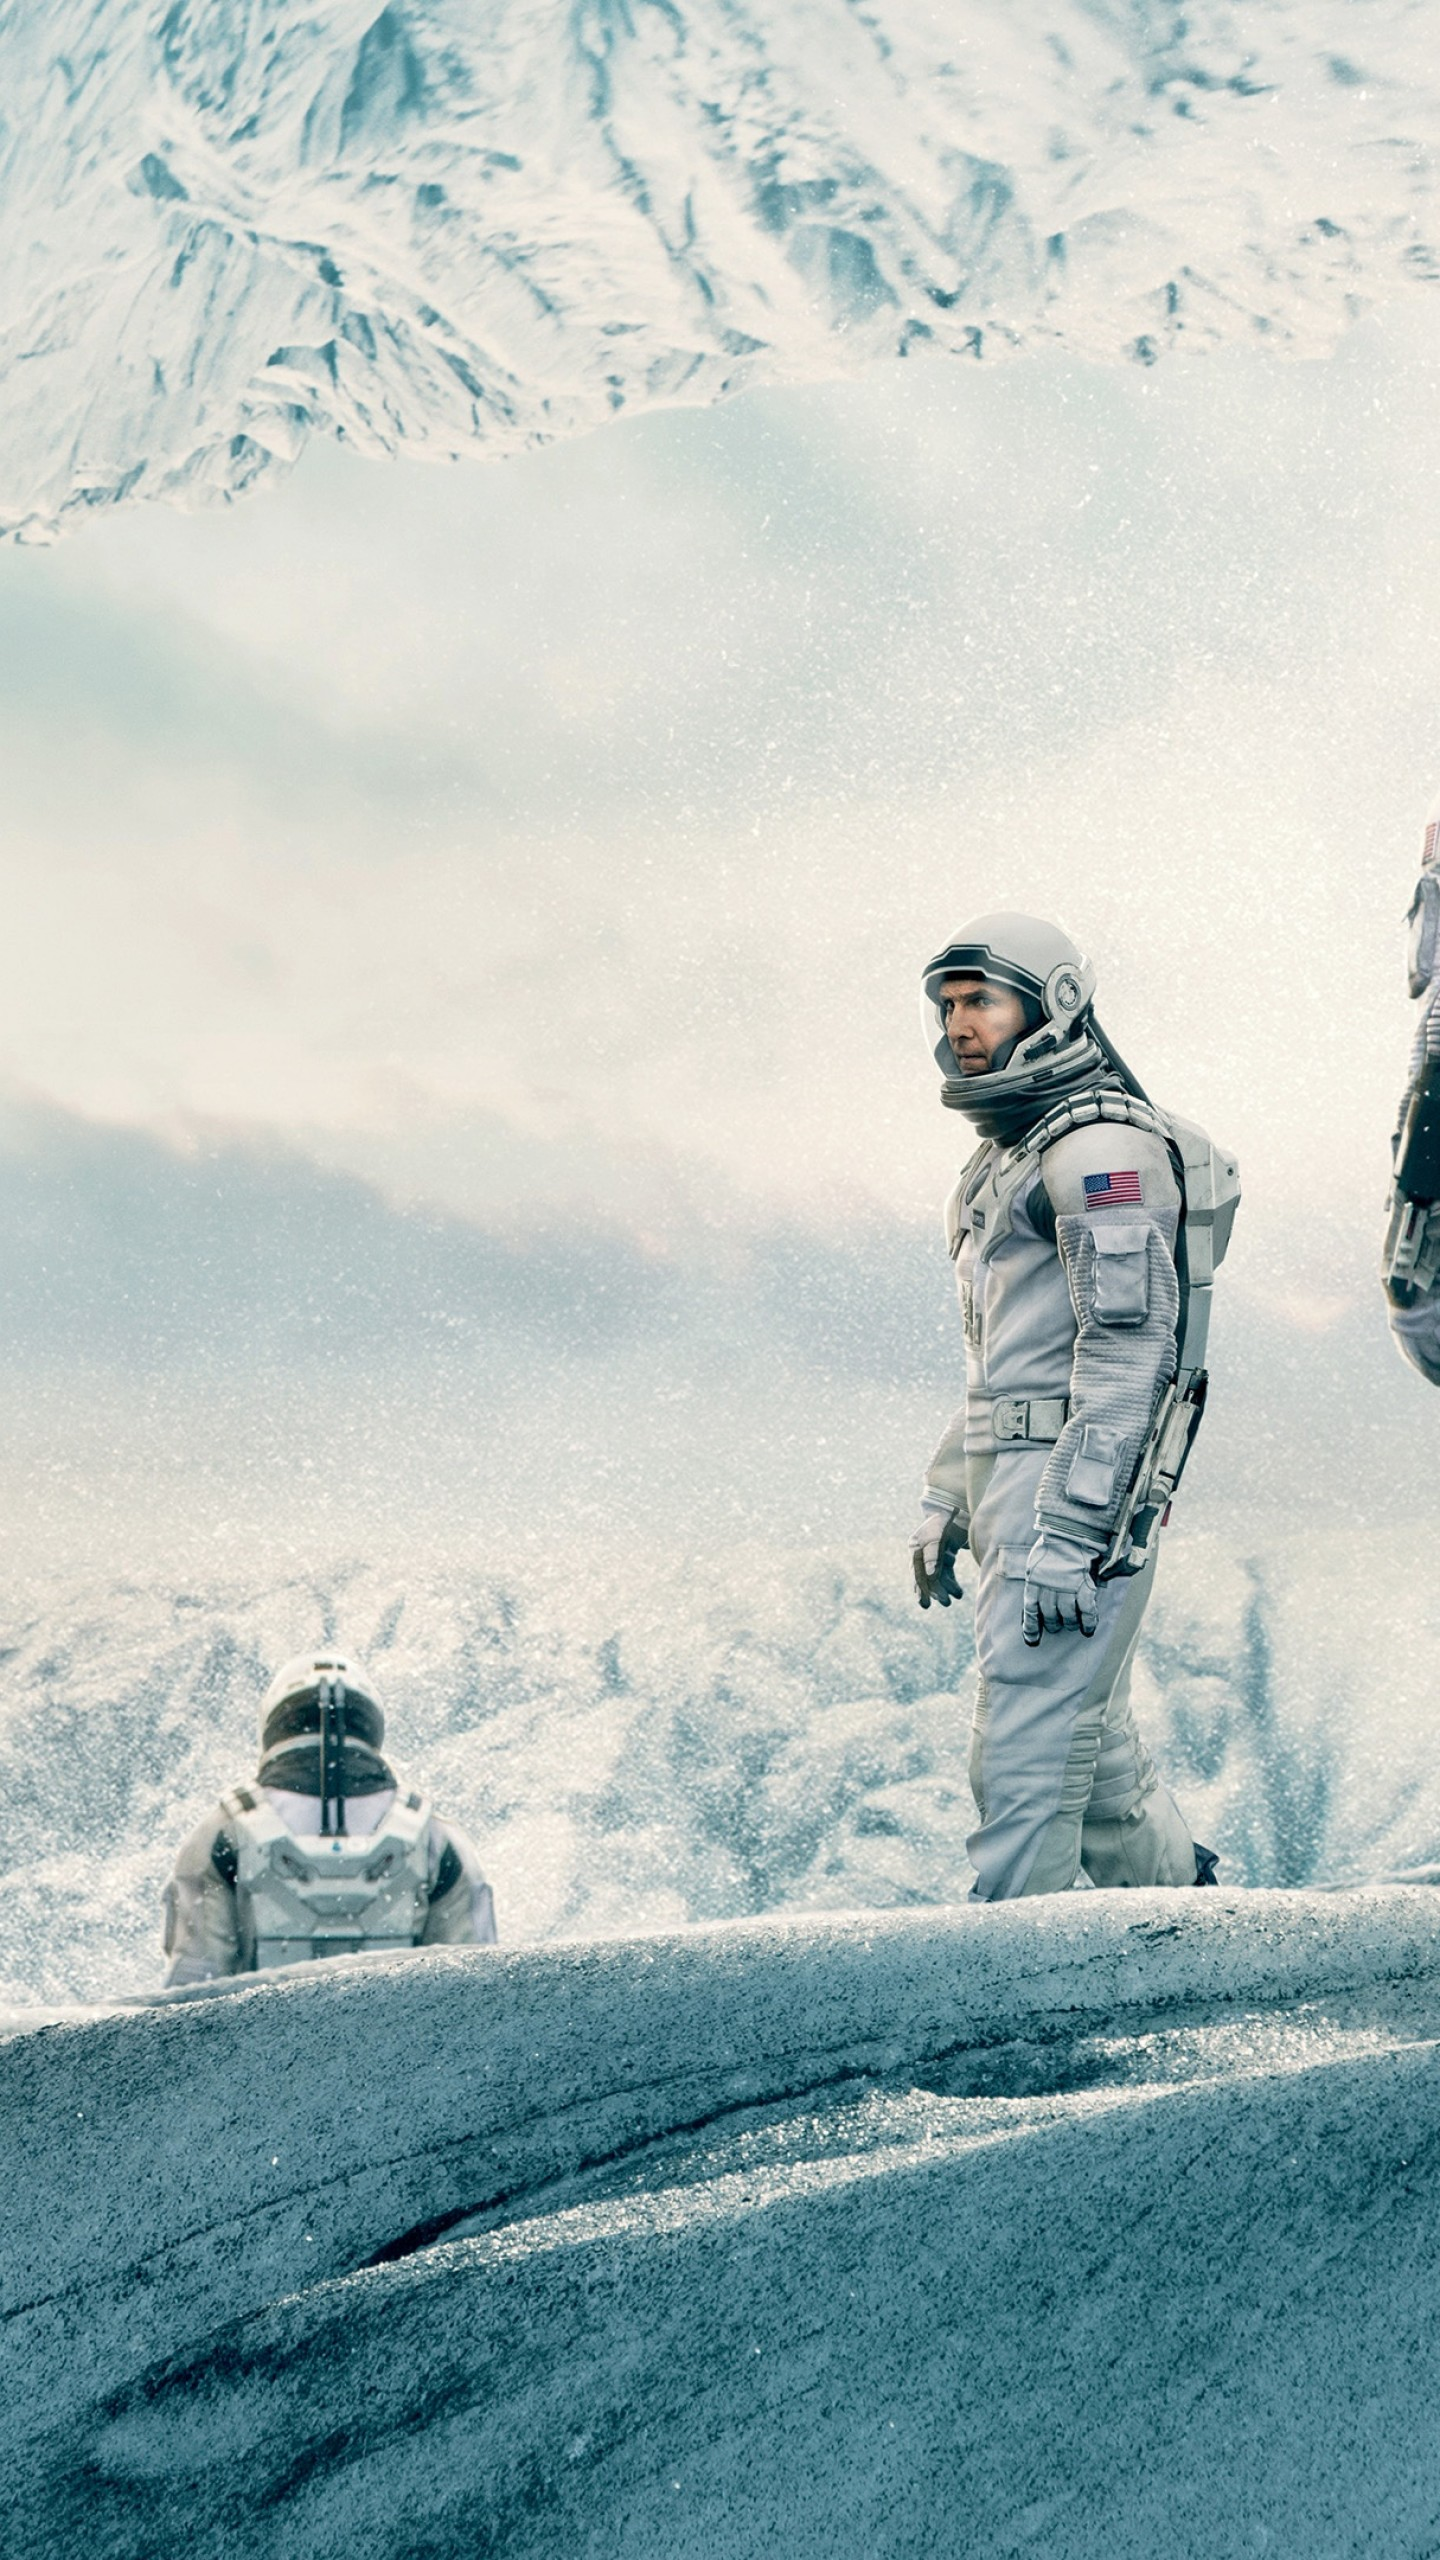 Girl Wallpaper Hd Wallpaper Interstellar Movie Matthew Mcconaughey Space